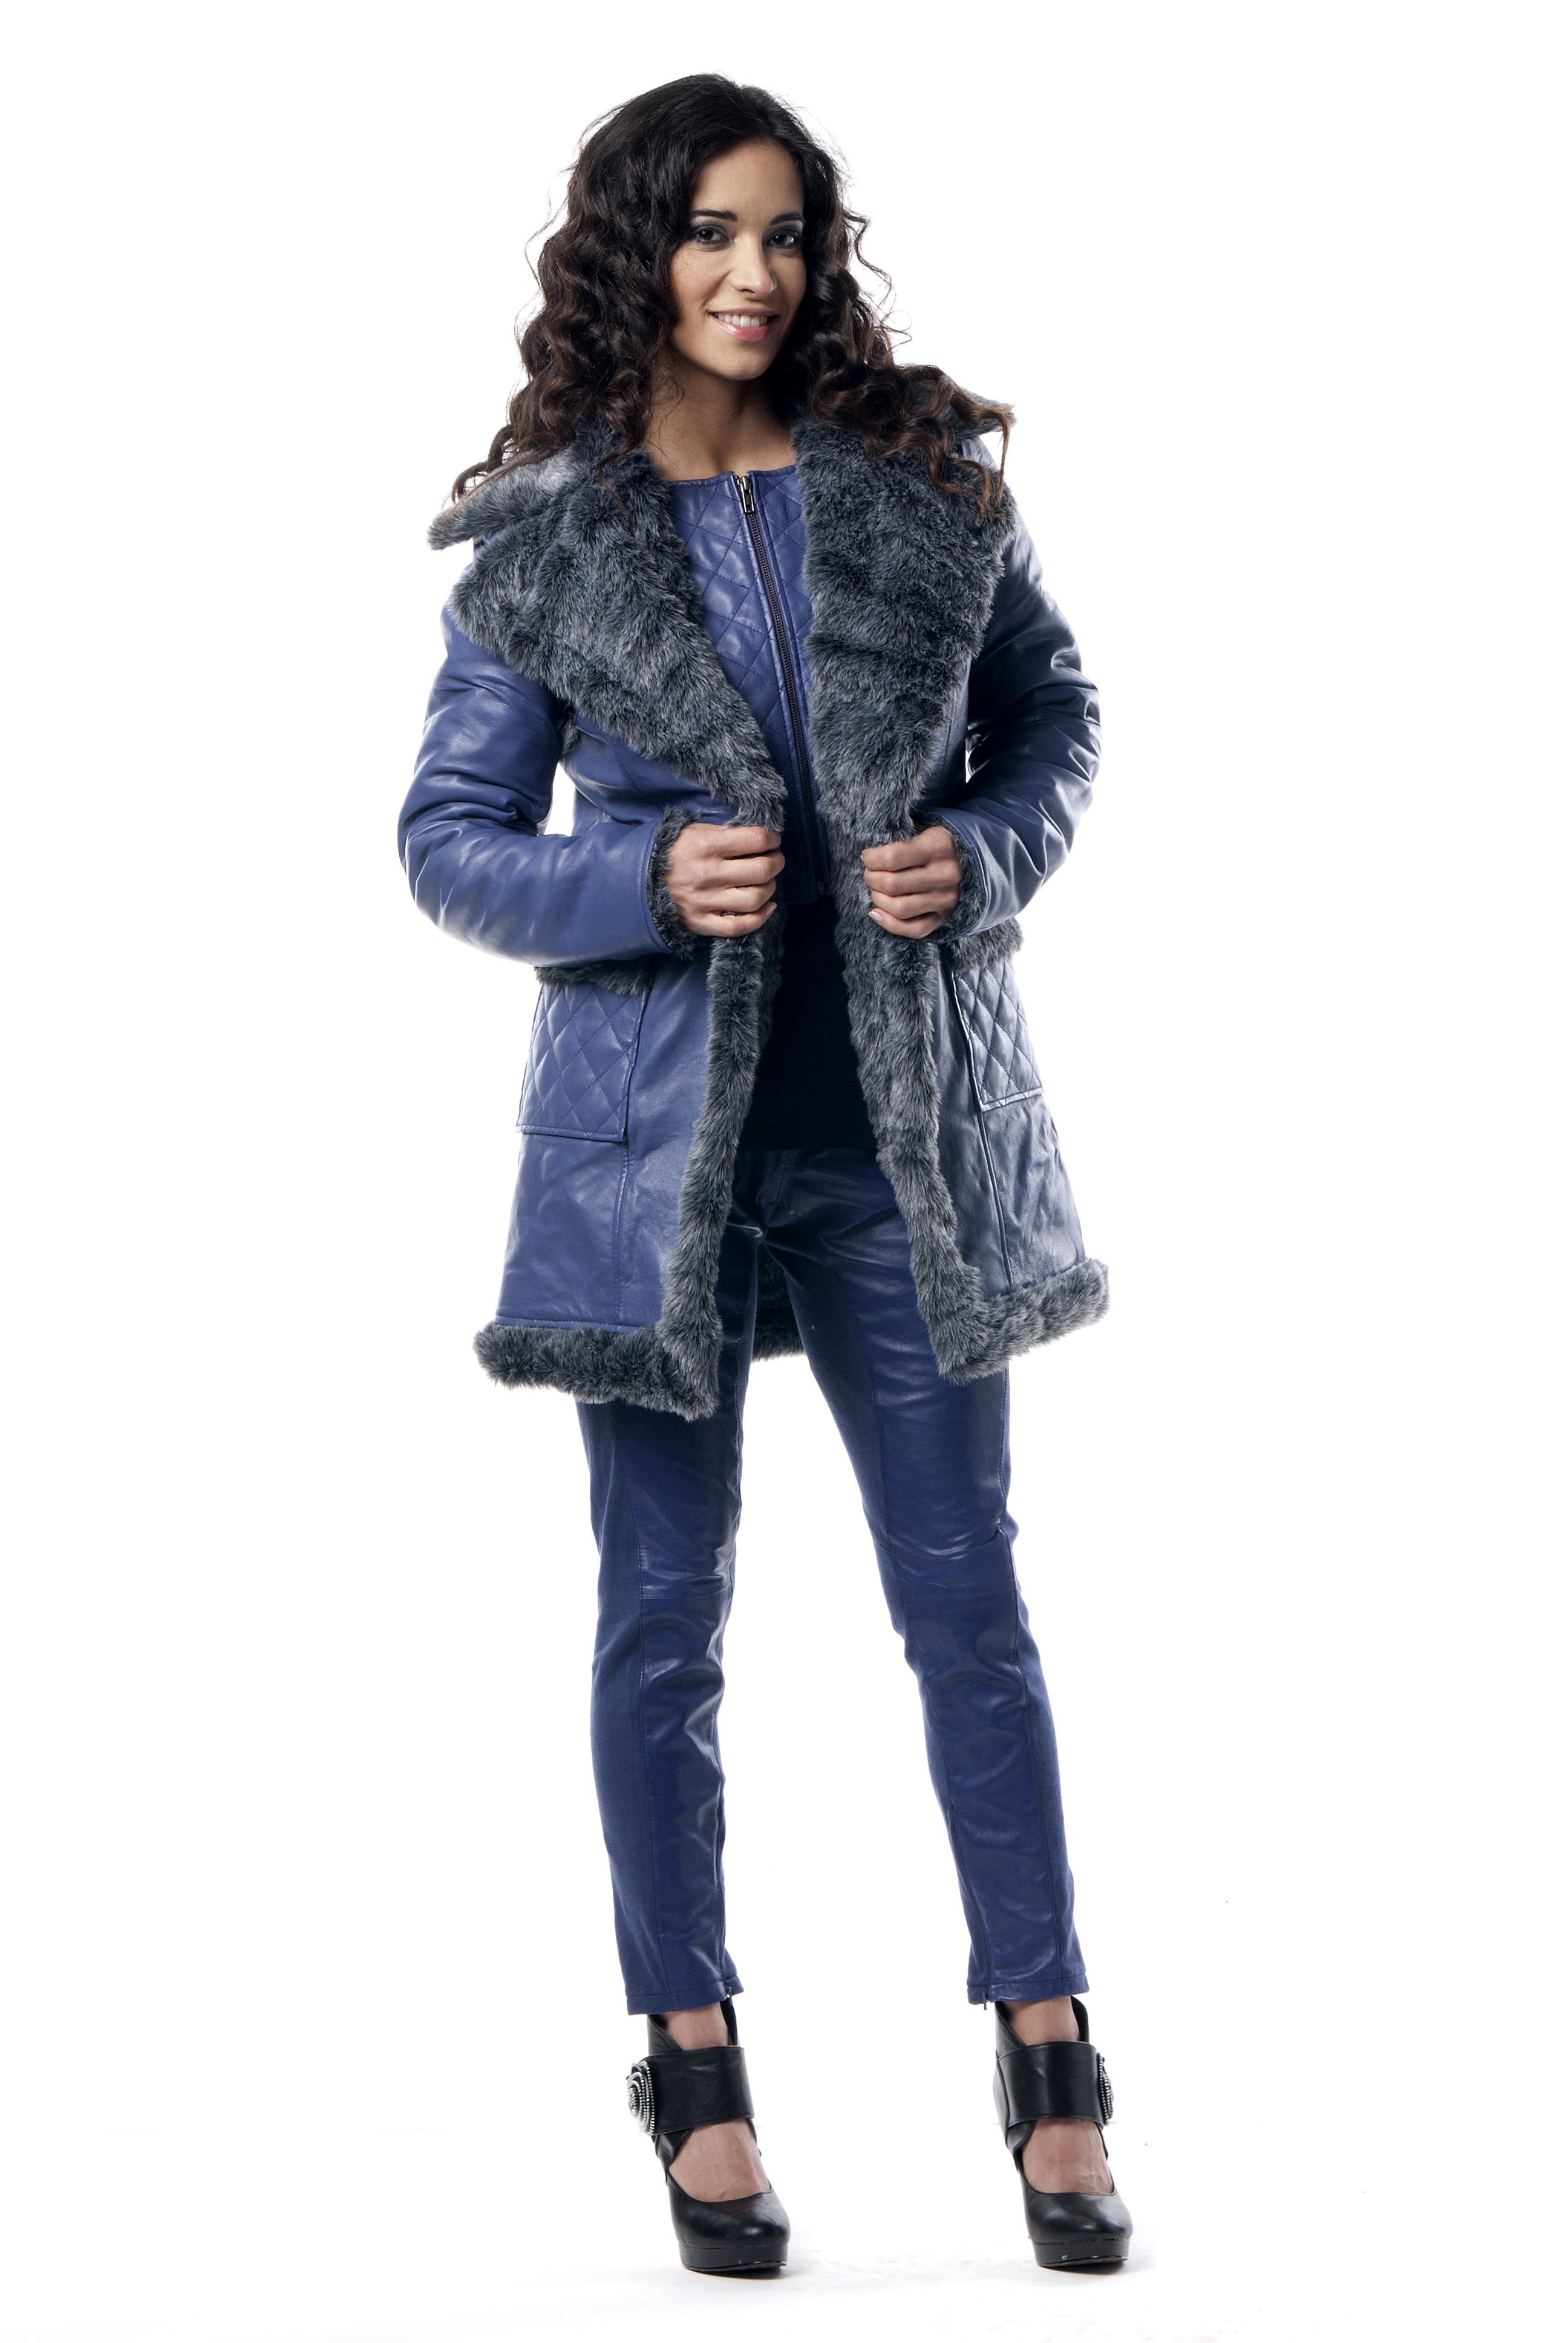 Les Fees Du Vent Couture: Crazy Sexy Genuine Leather Faux Fur Coat (Almost Gone!) LFDV_556107_N